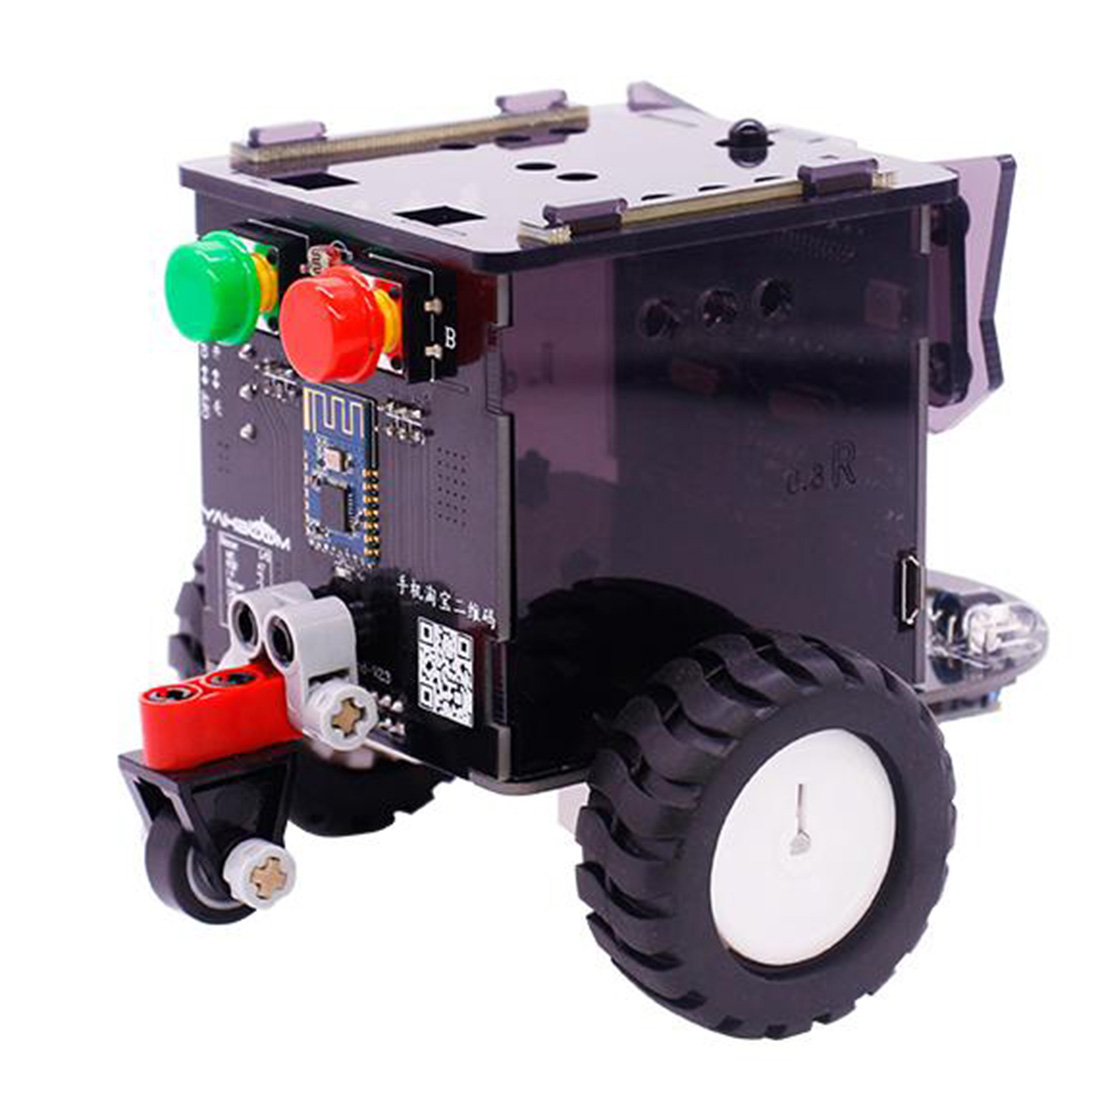 New Standard Version Omibox Scratch Programmable Robot Car Electronic DIY Stem Gift Toy Kit